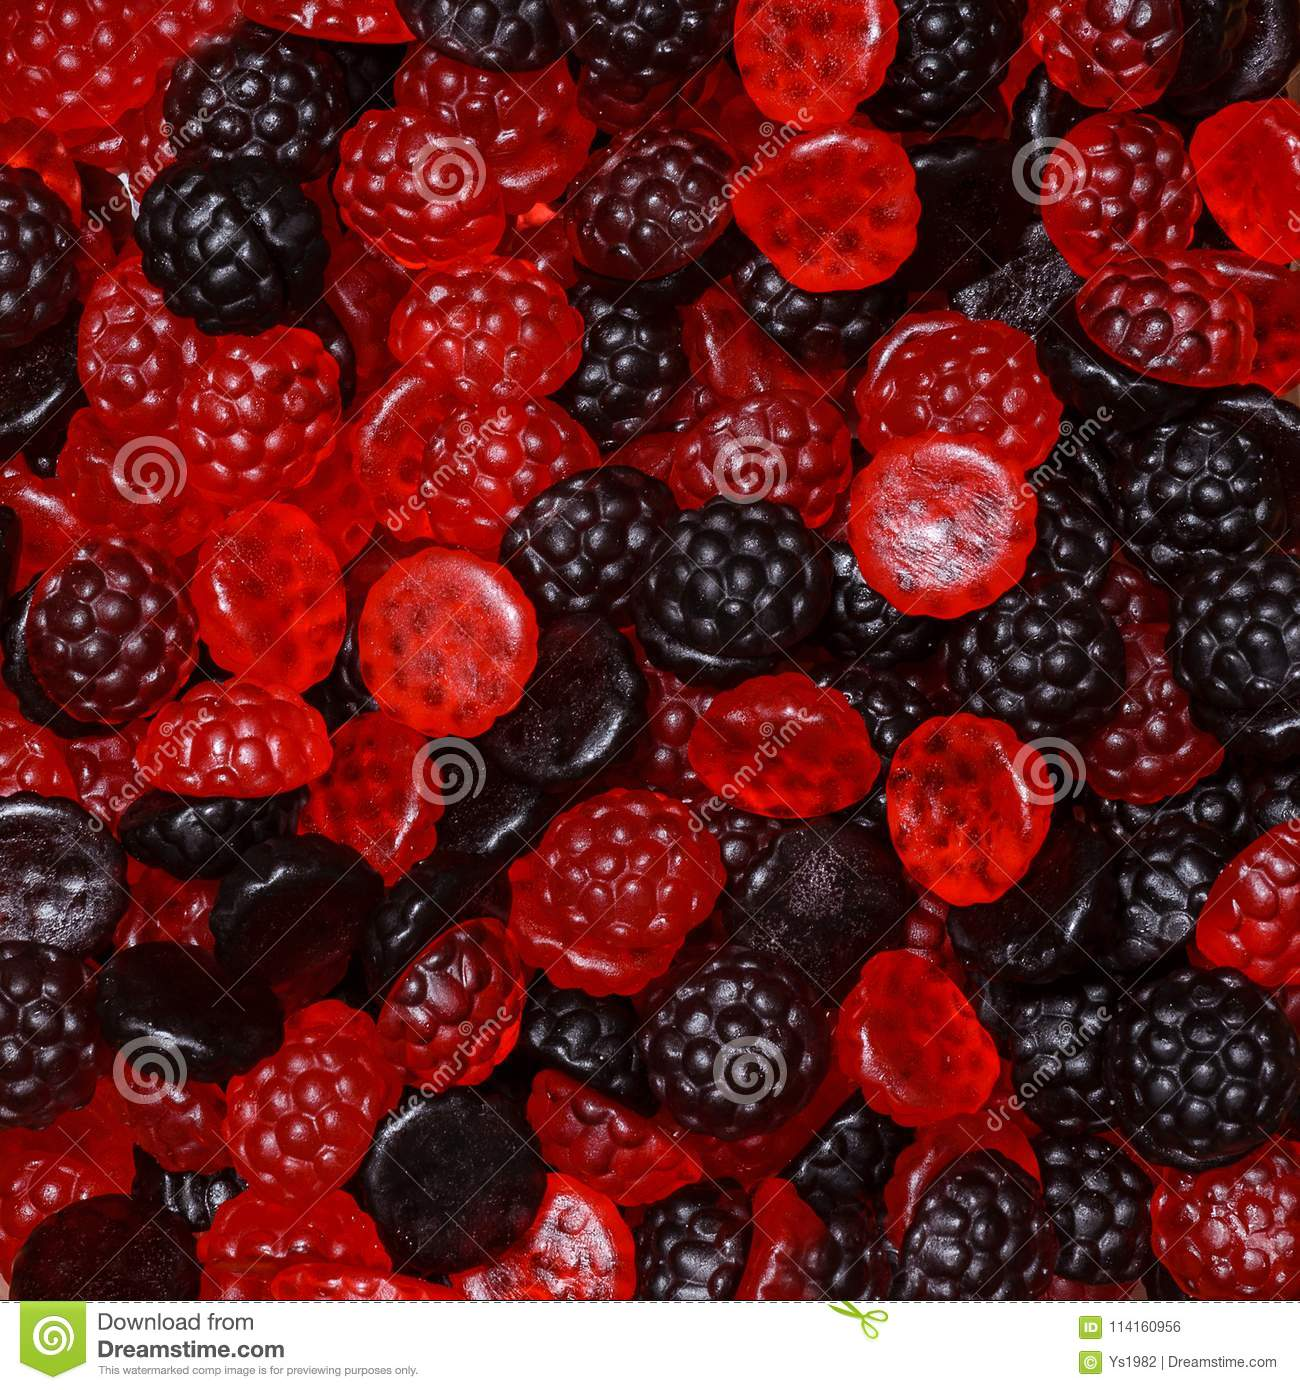 Black and cranberry candies in the form of raspberries and blackberries